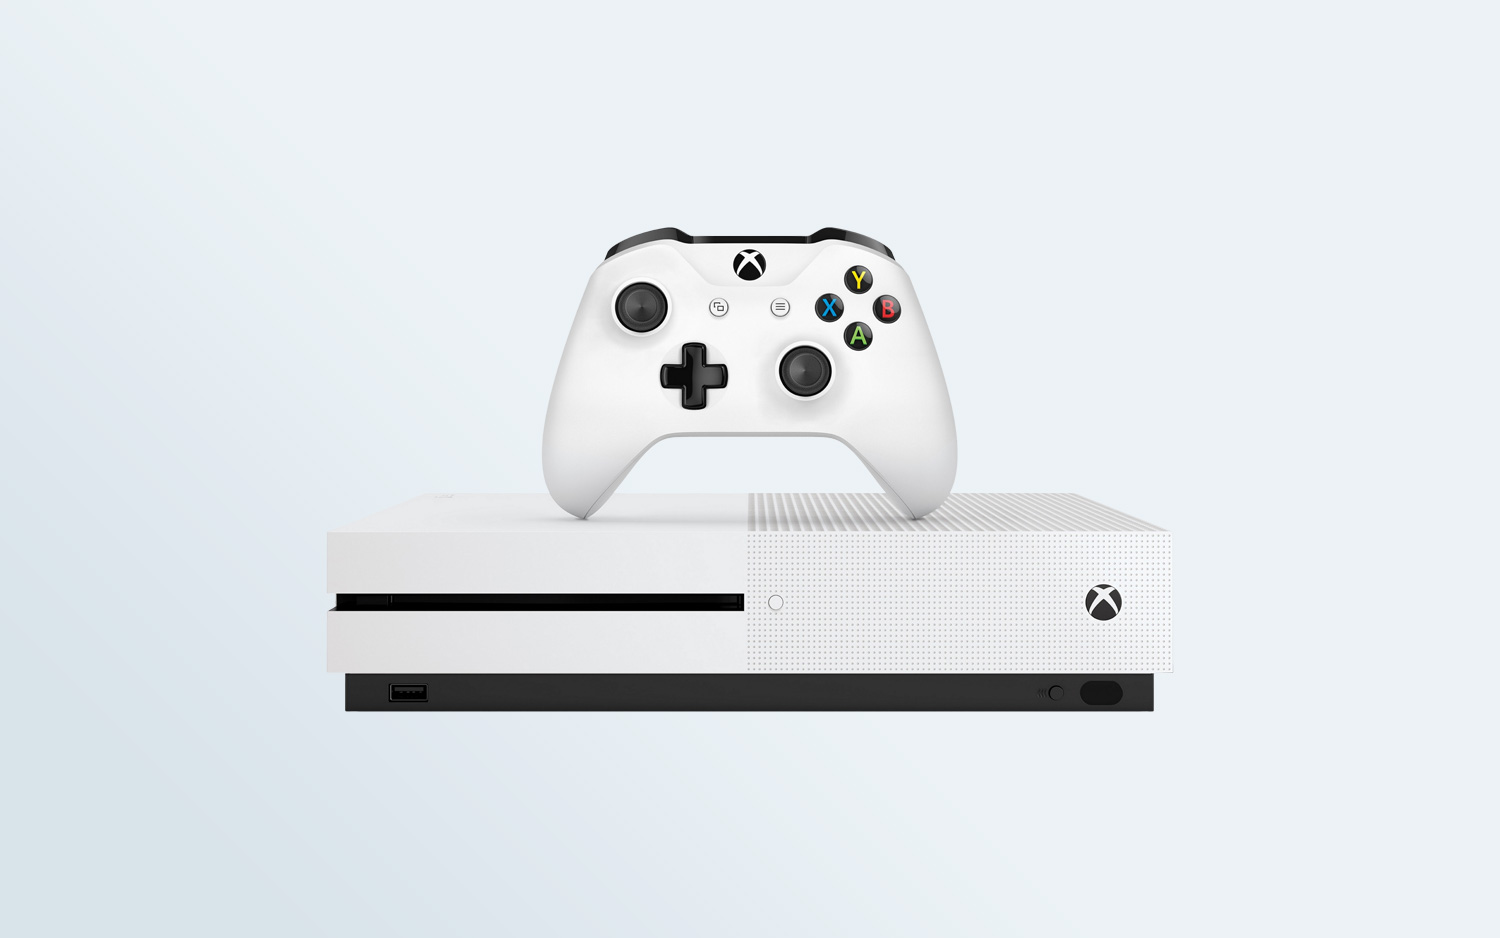 Best Gaming Console 2019 - Top Video Game Systems to Buy